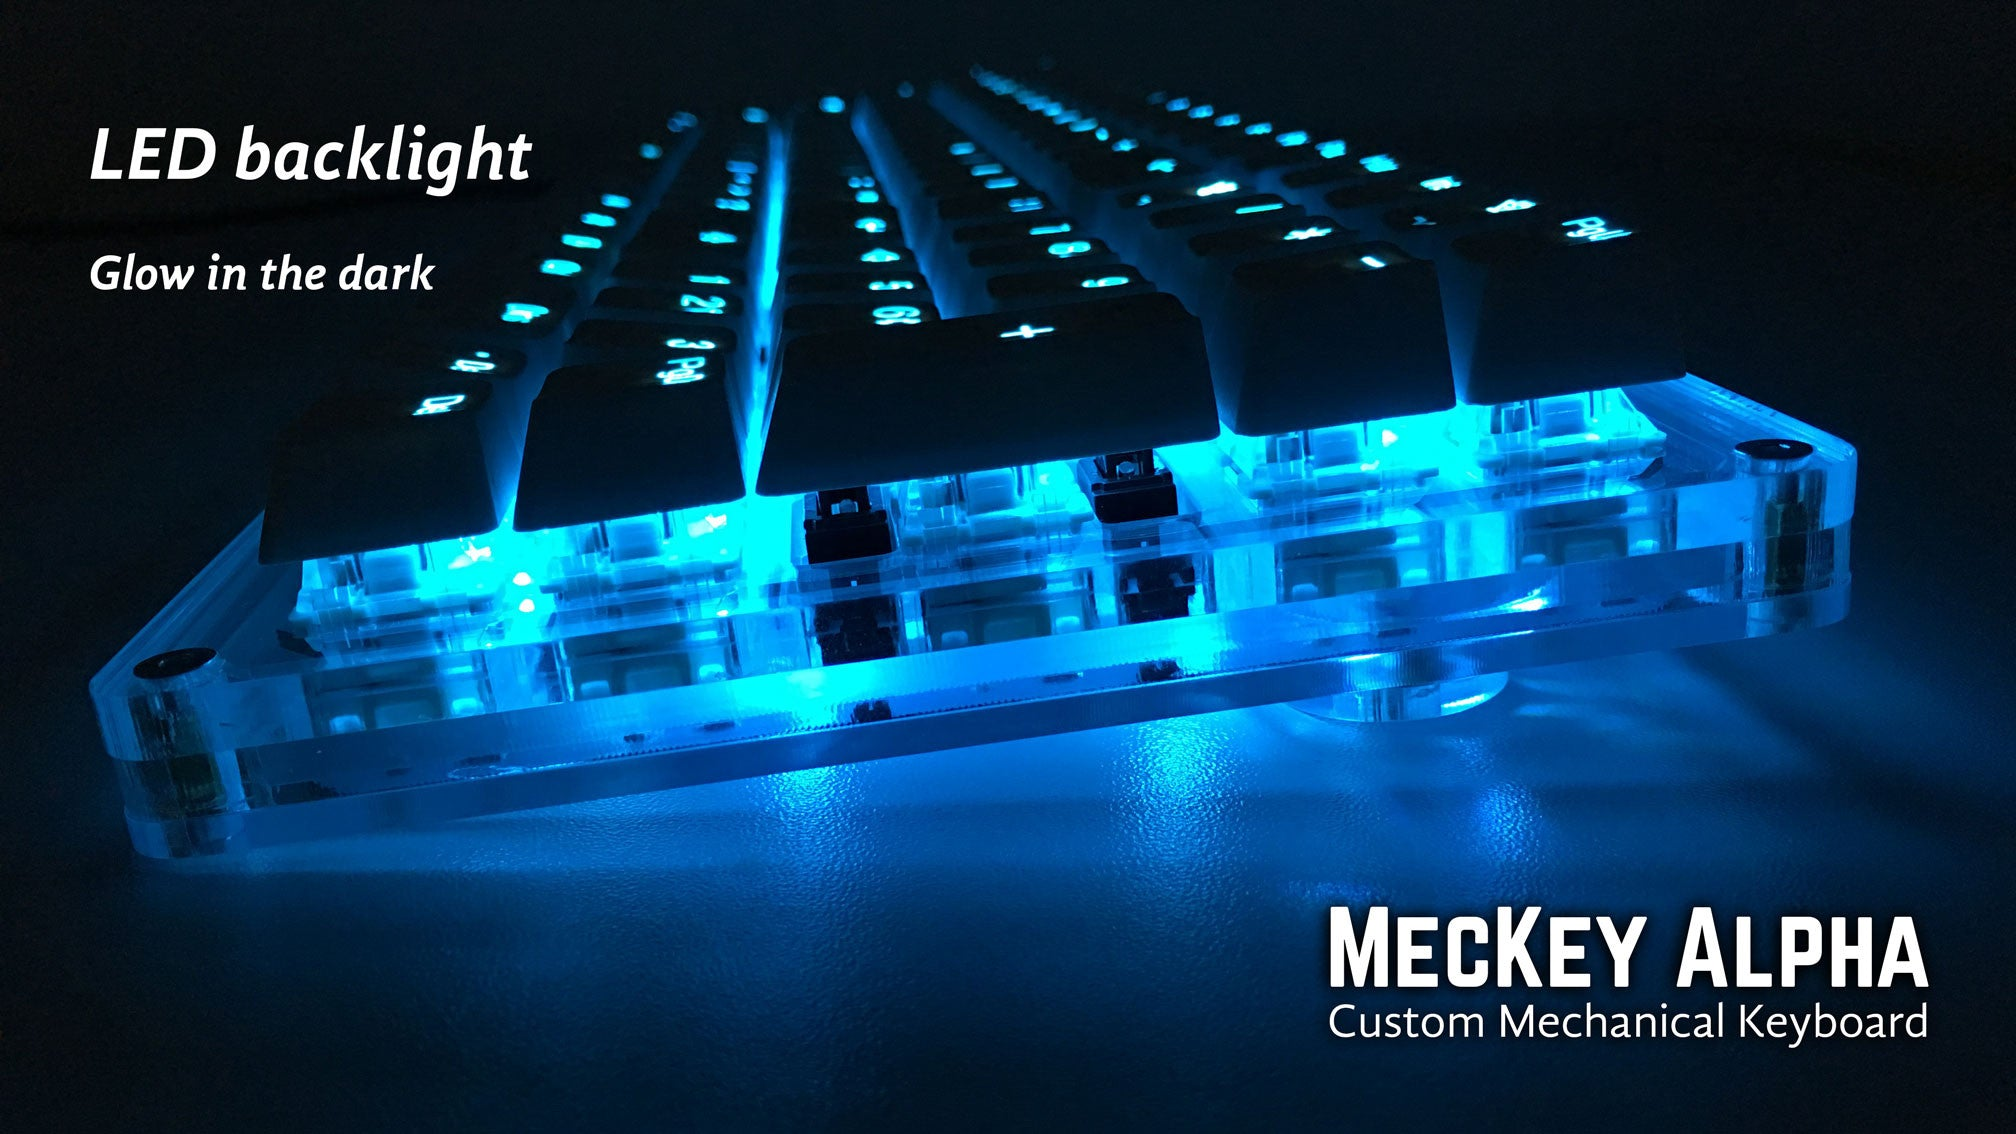 MecKey Alpha 98 Layout Acrylic Mechanical Keyboard Gateron Black Switches TaiHao Backlit Doubleshot Keycaps Side View